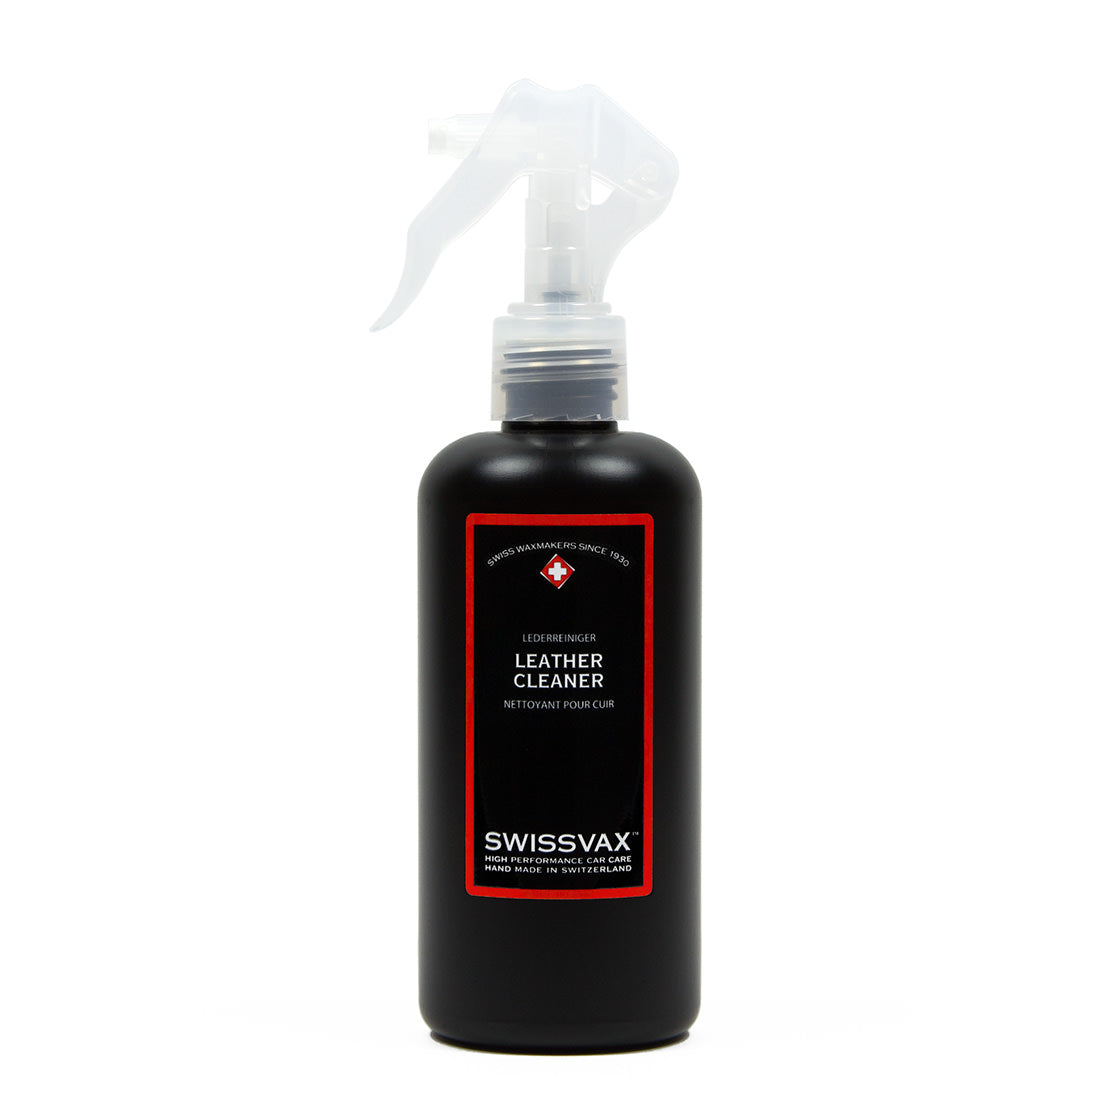 Swissvax Leather Cleaner